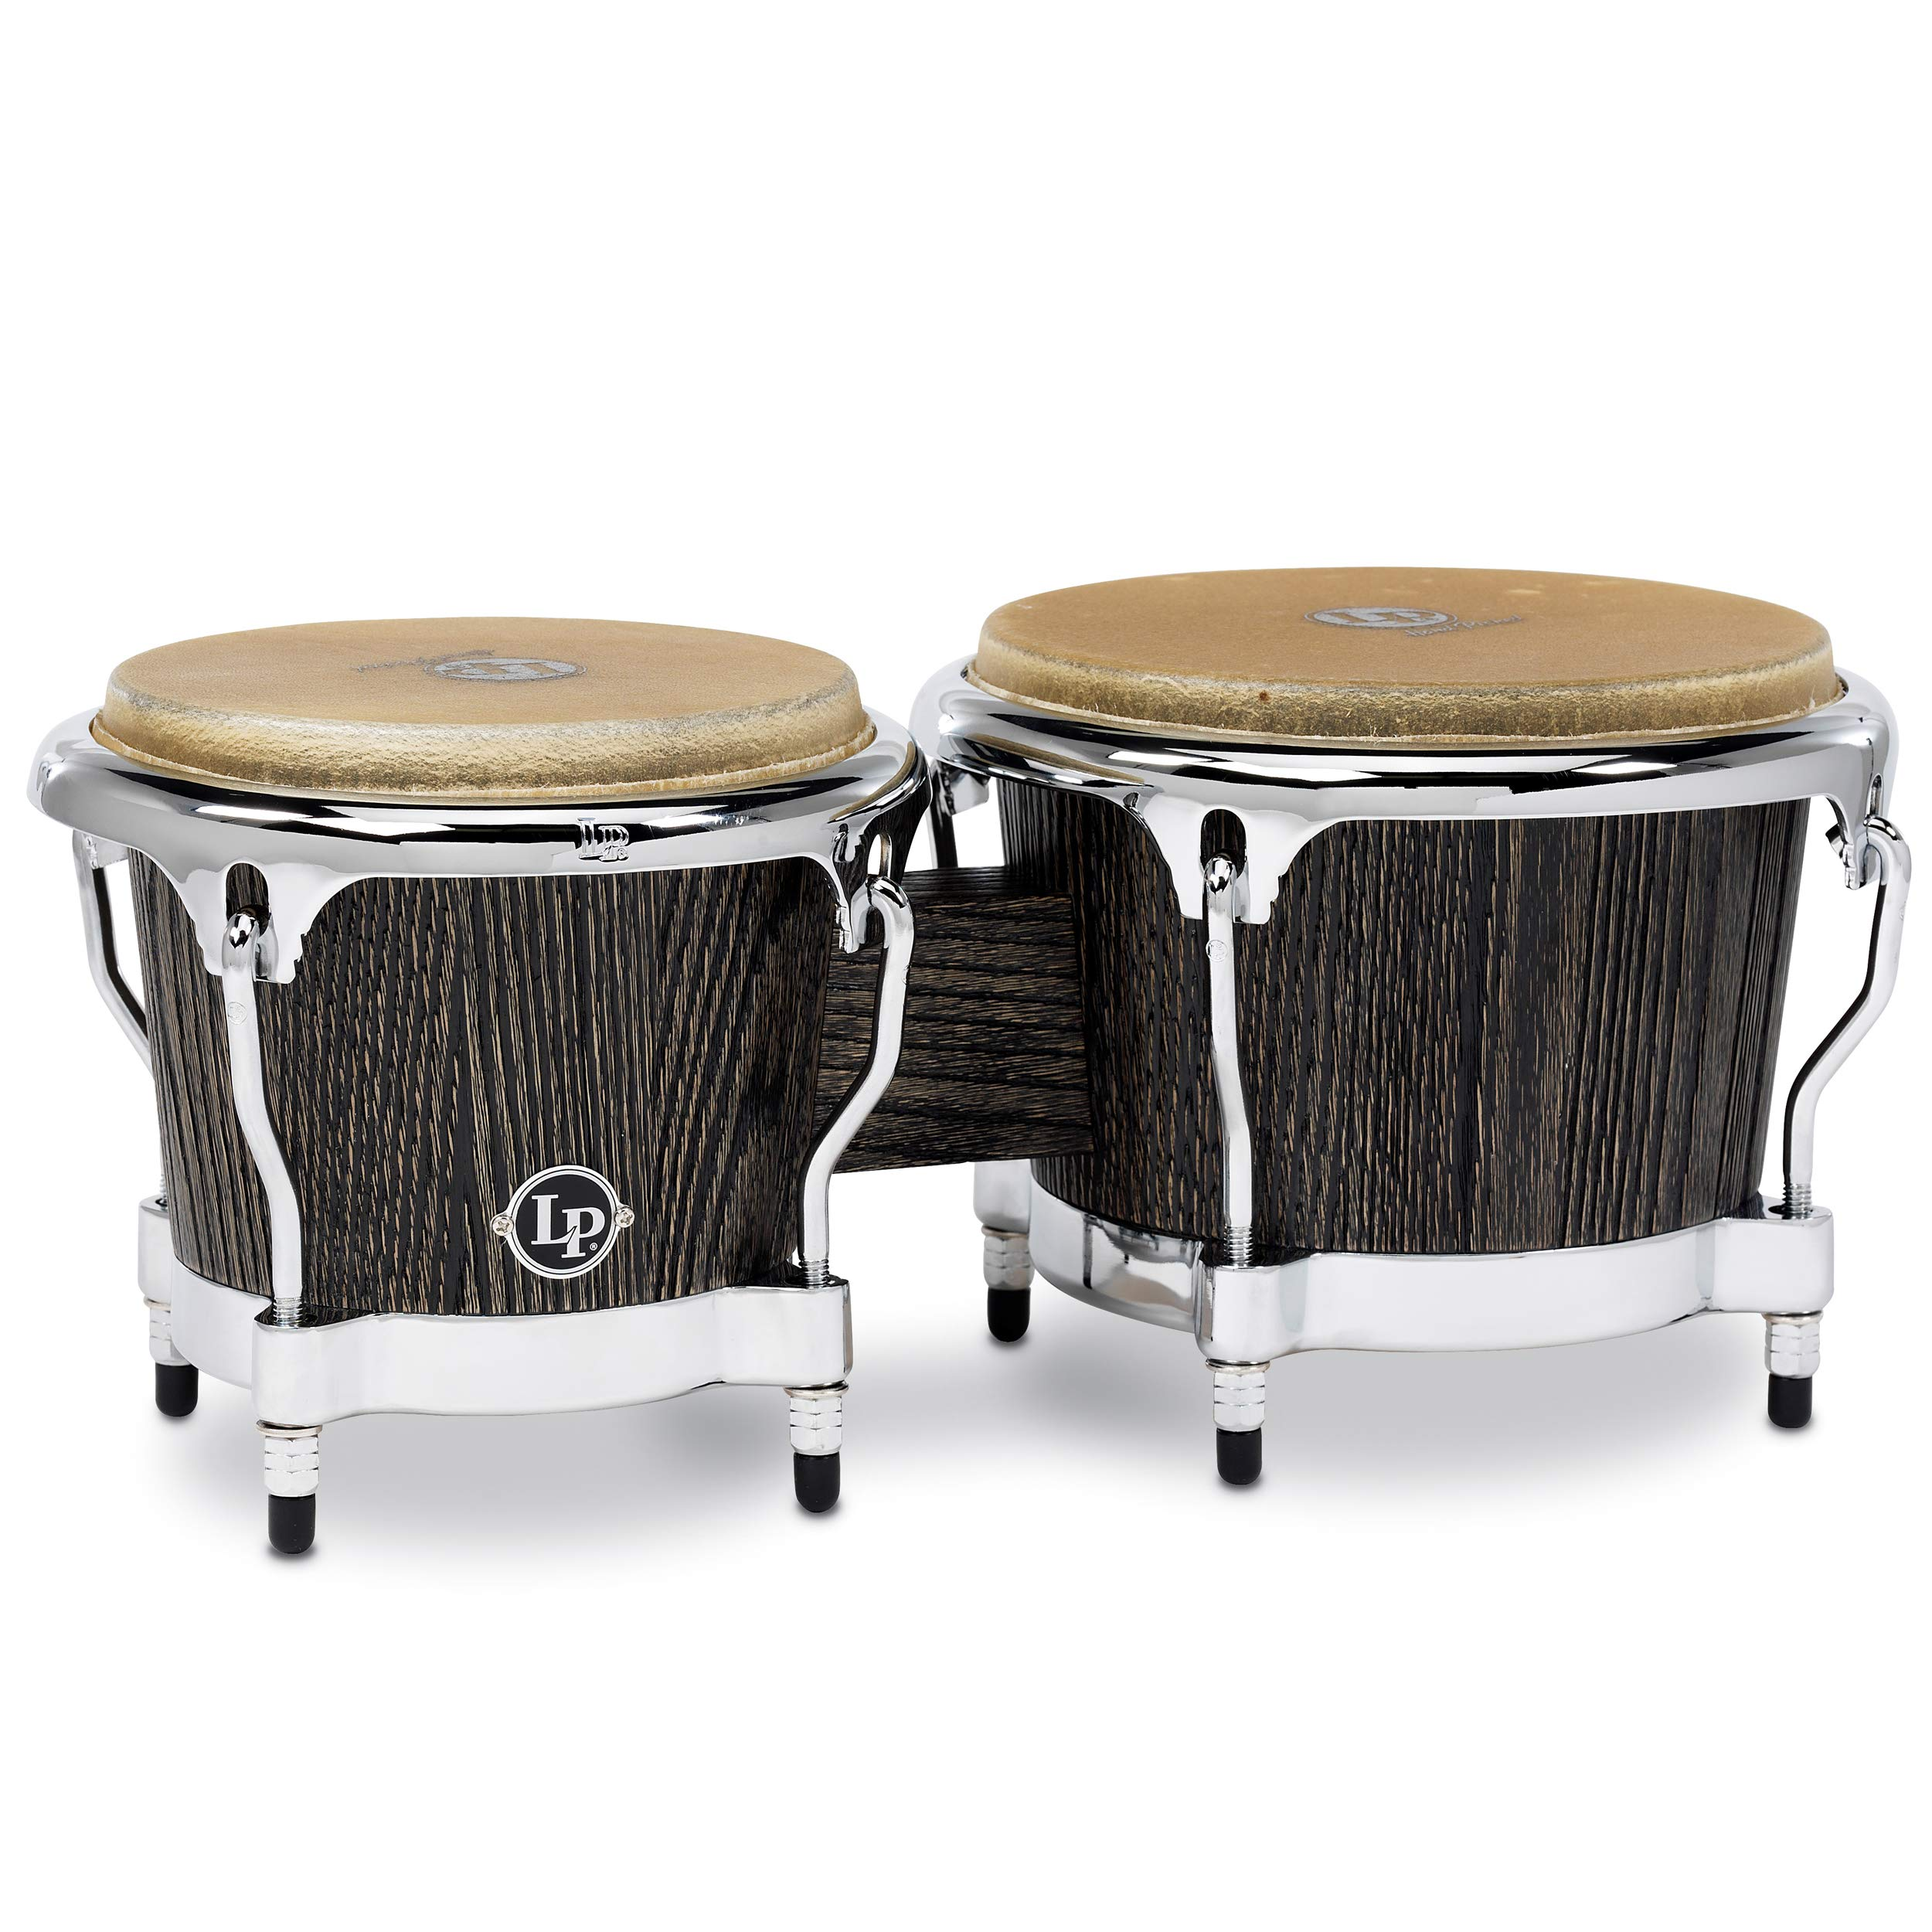 Latin Percussion Uptown Series Bongos - Sculpted Ash